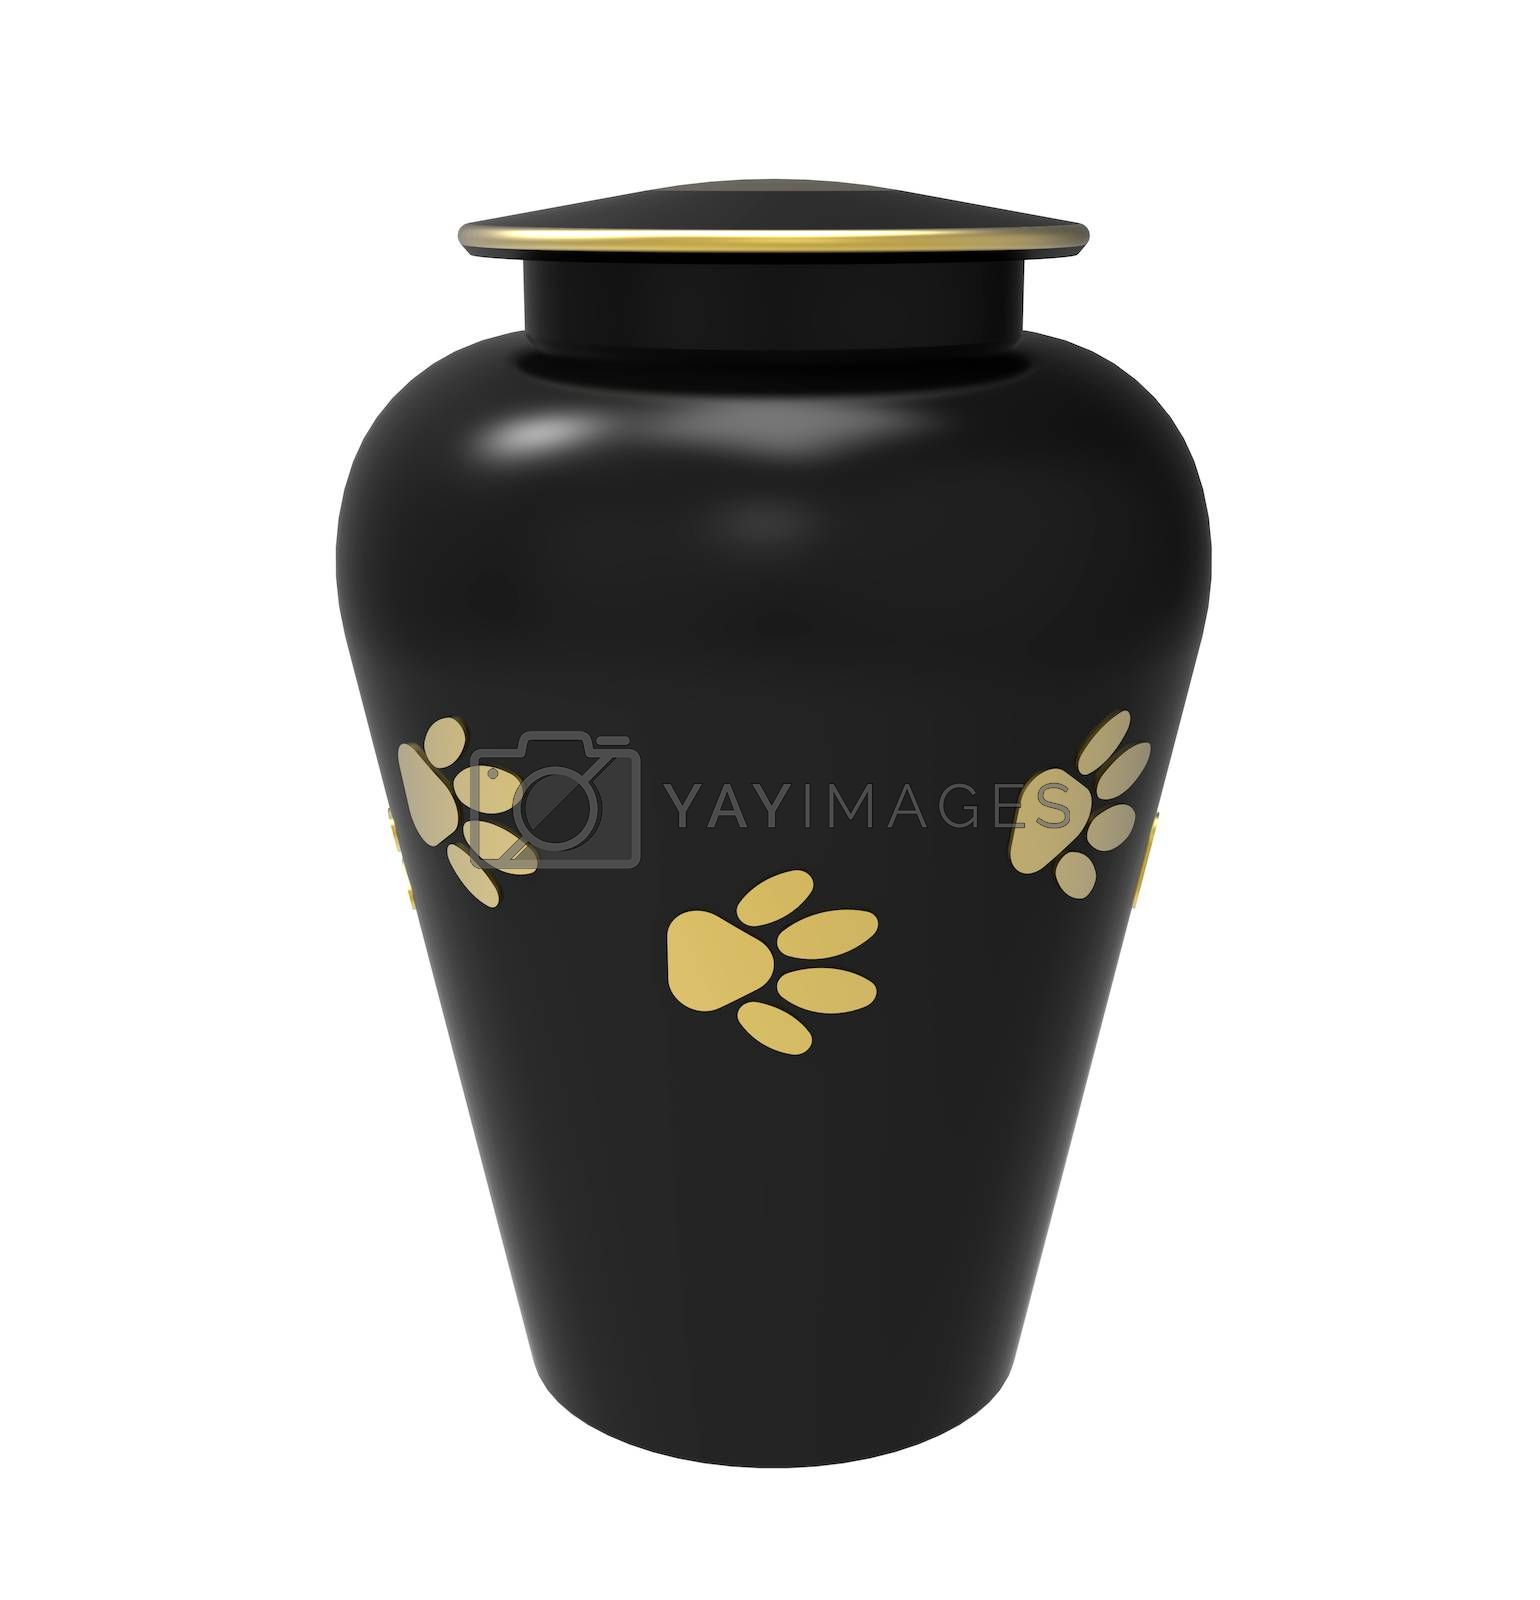 Black Cremation urn for pets, 3d render, isolated on white